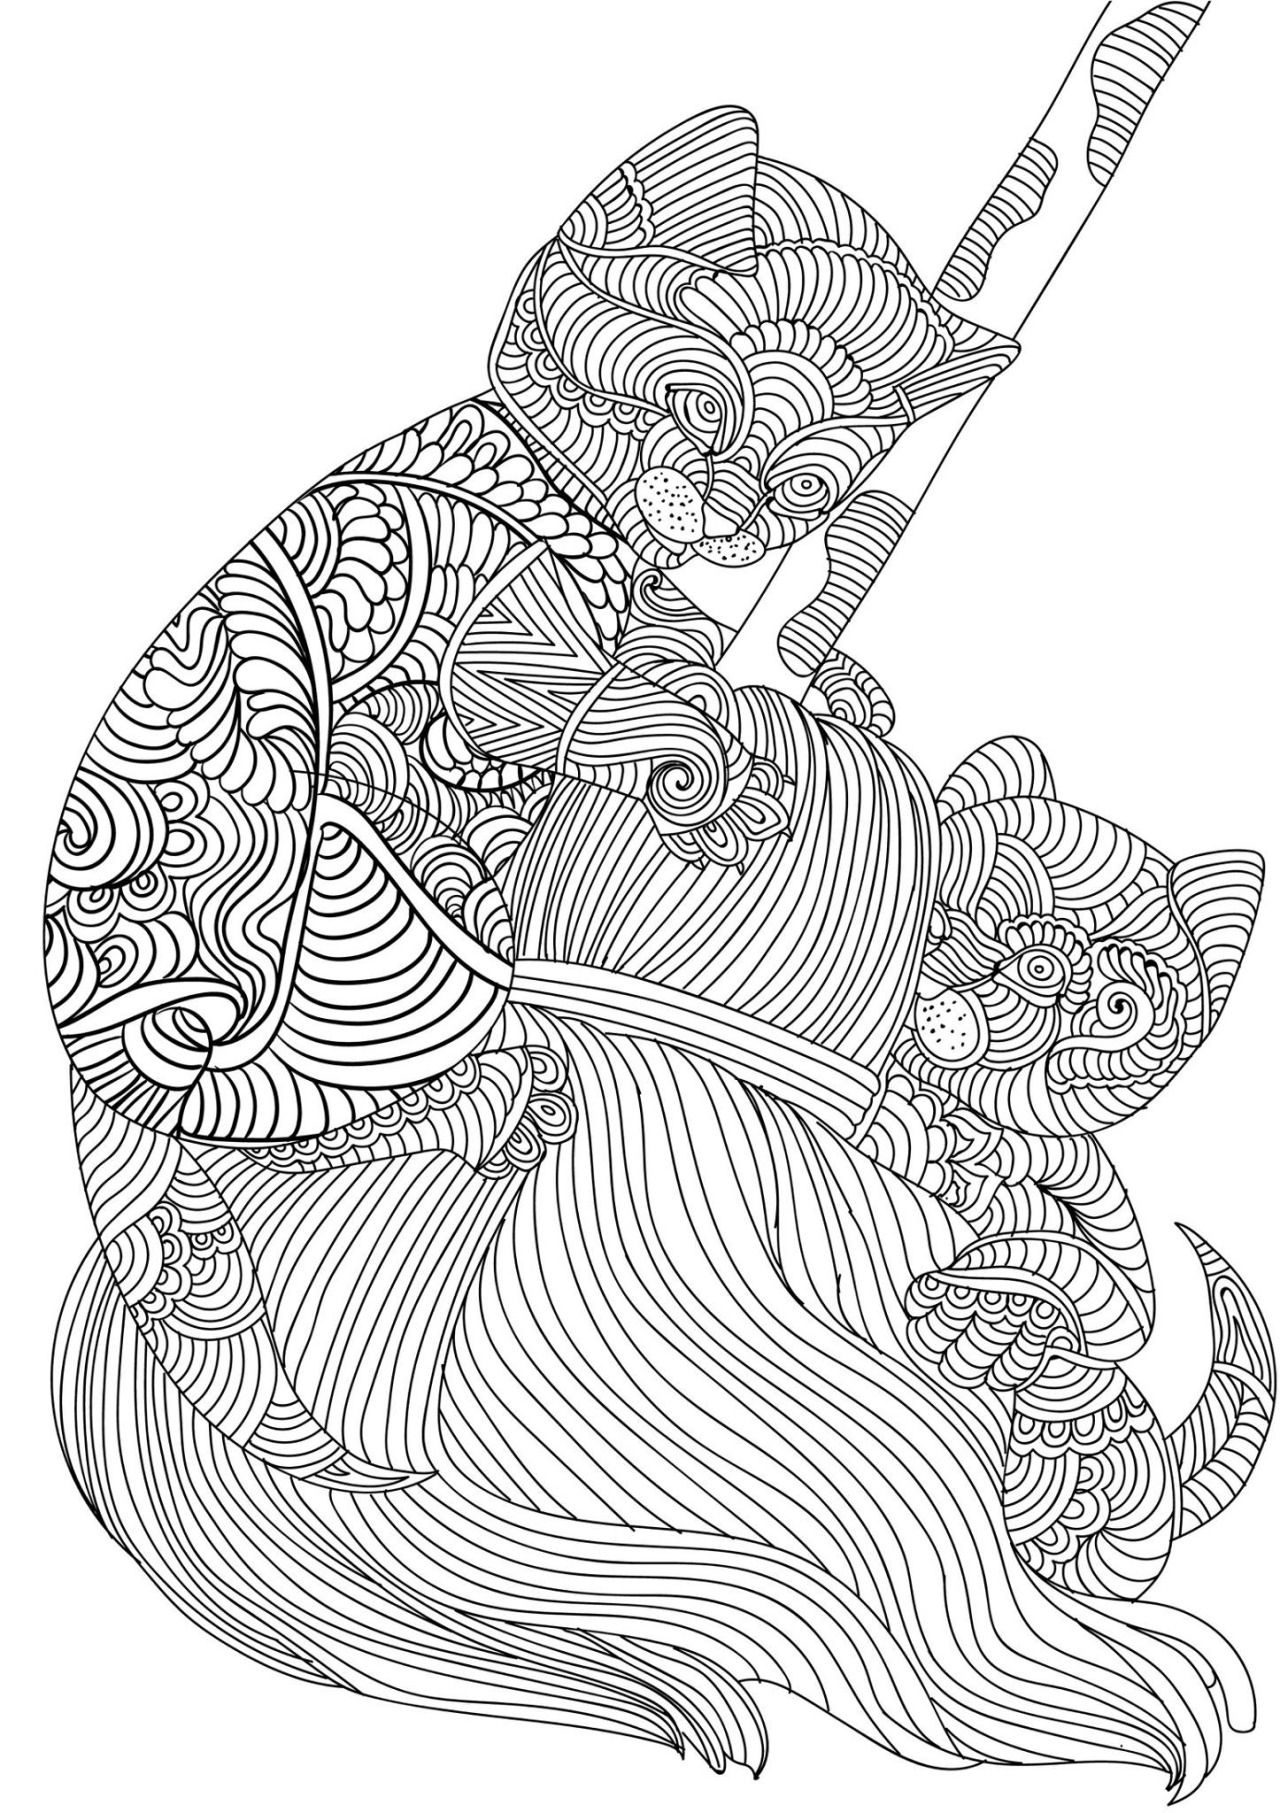 Stress relieving cats coloring - Stress Relieving Cats Coloring 13